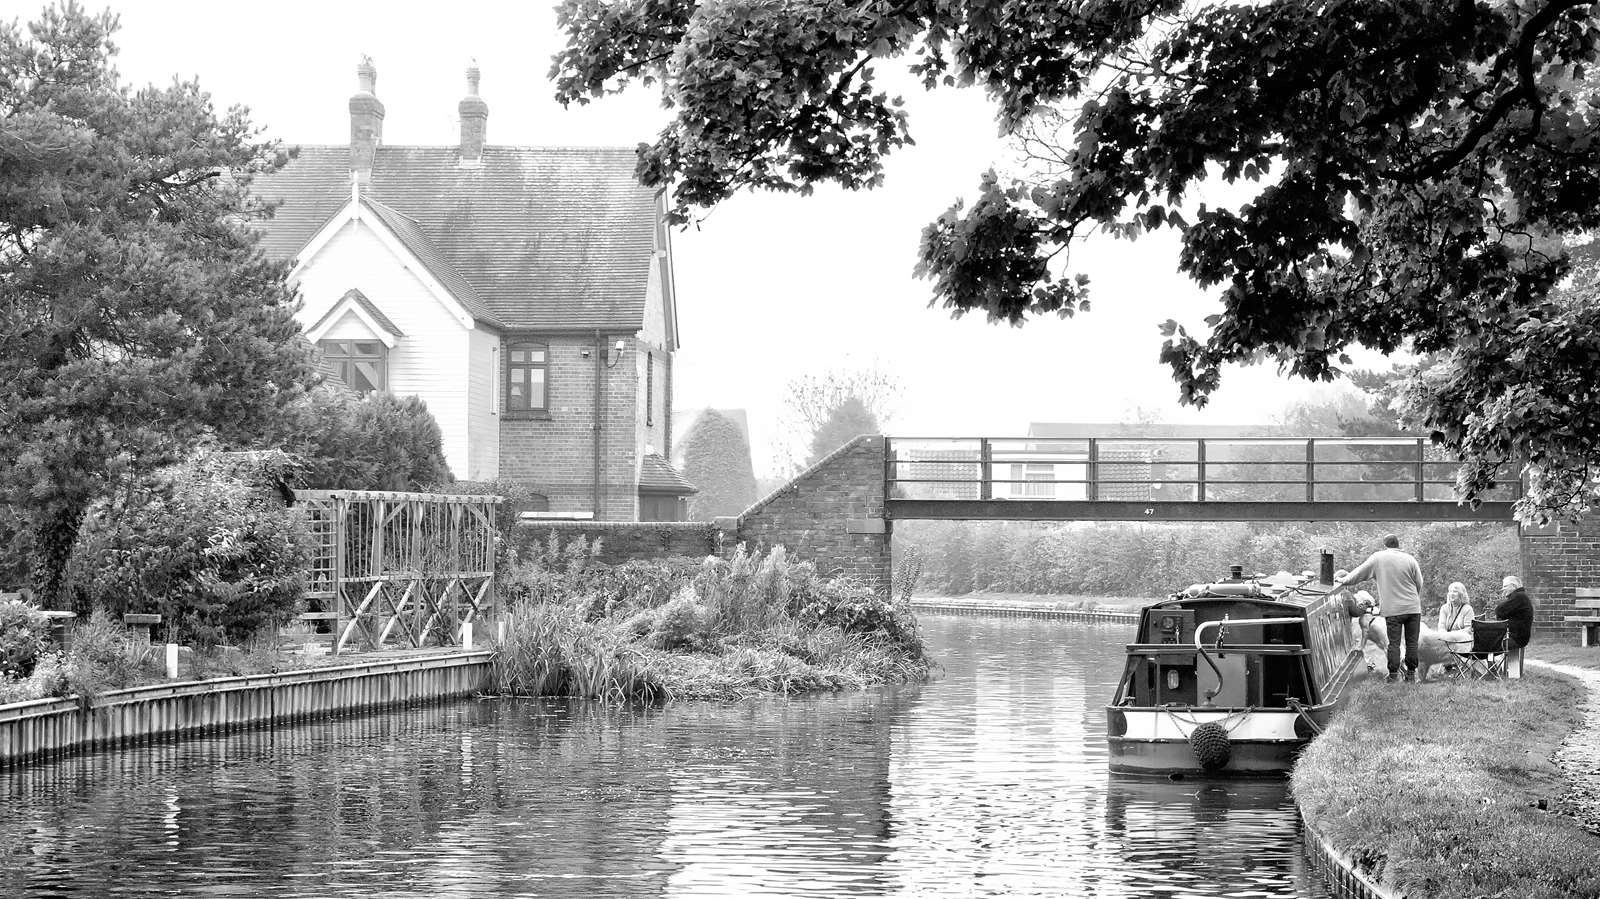 A family picnic by the boat near Alrewas on the Trent and Mersey Canal